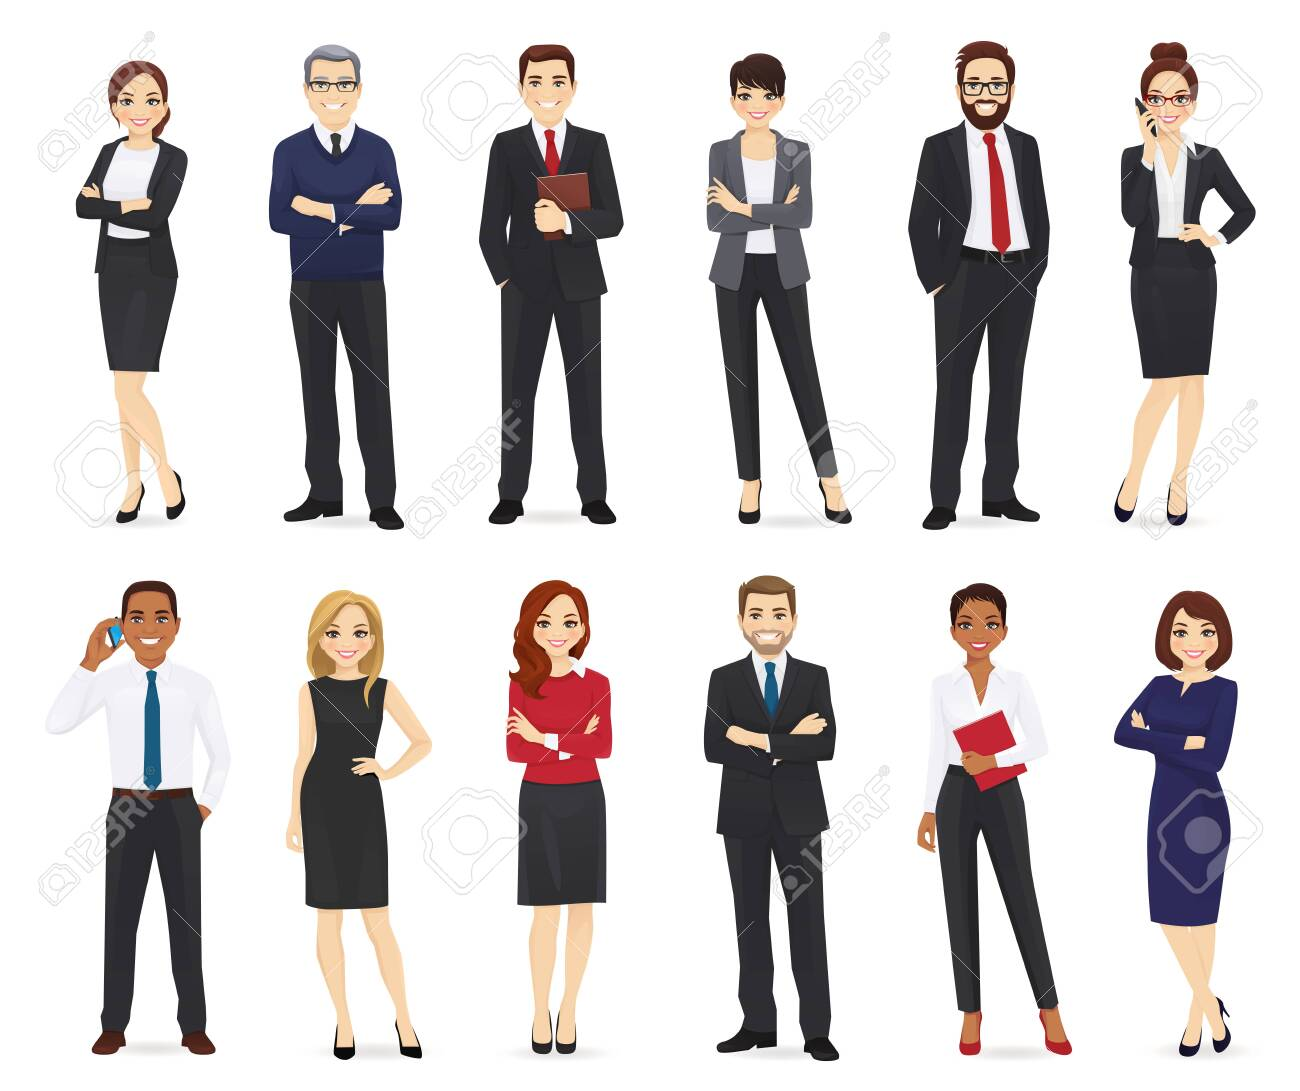 Business people, office workers set isolated vector illustration - 124576331